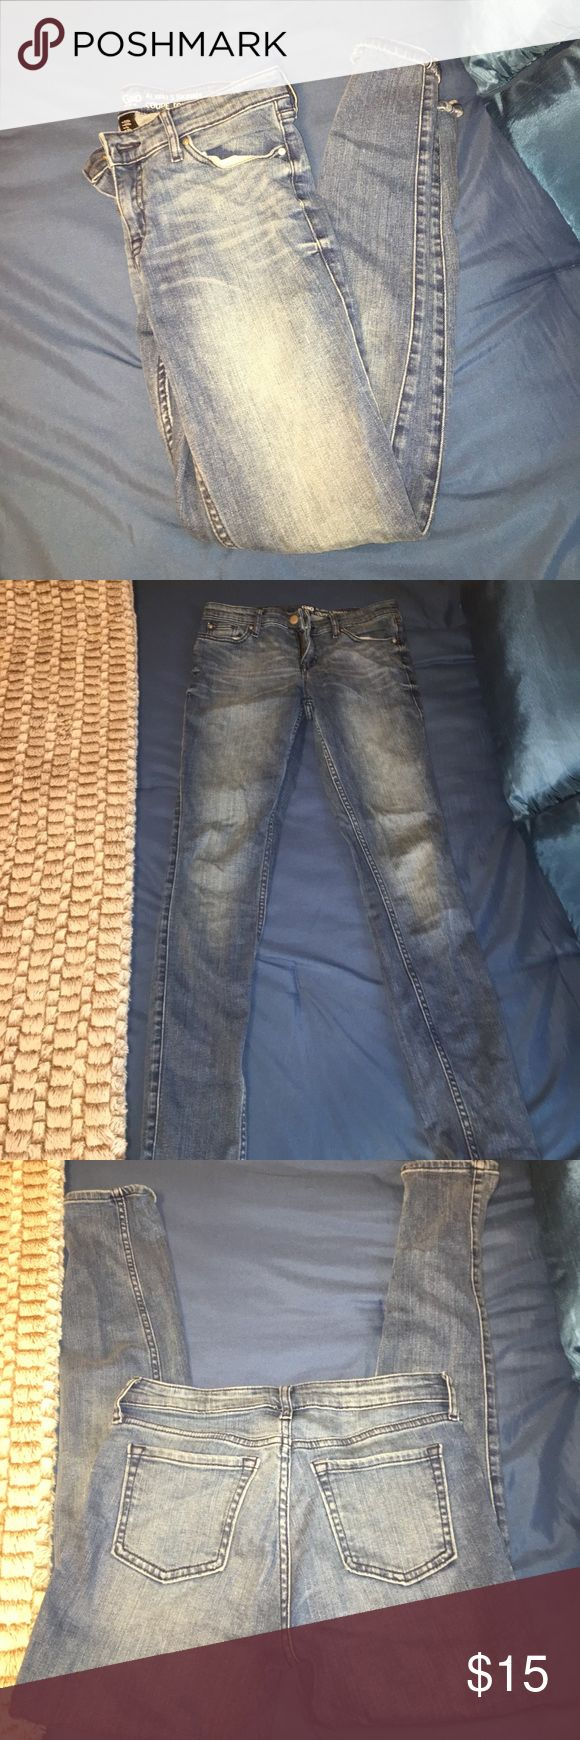 """Gap Skinny Jeans I bought these from Plato Closet a couple of weeks ago but they don't fit me very well so I'm selling them! They are a 0 and """"Always Skinny""""! GAP Jeans Skinny"""